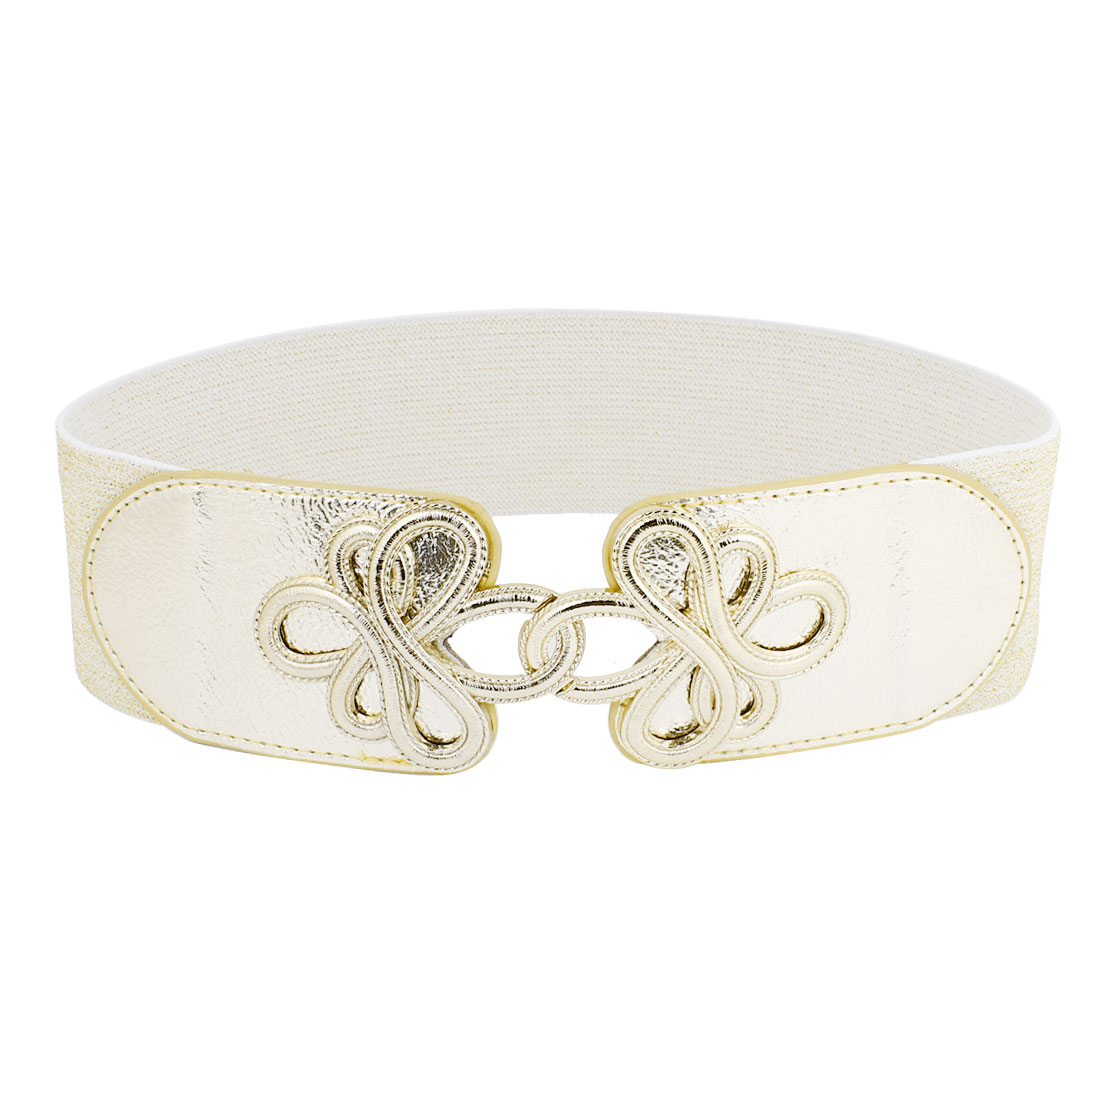 Metal Flower Interlock Buckle Elastic Fabric Waist Cinch Belt Gold Tone for Women